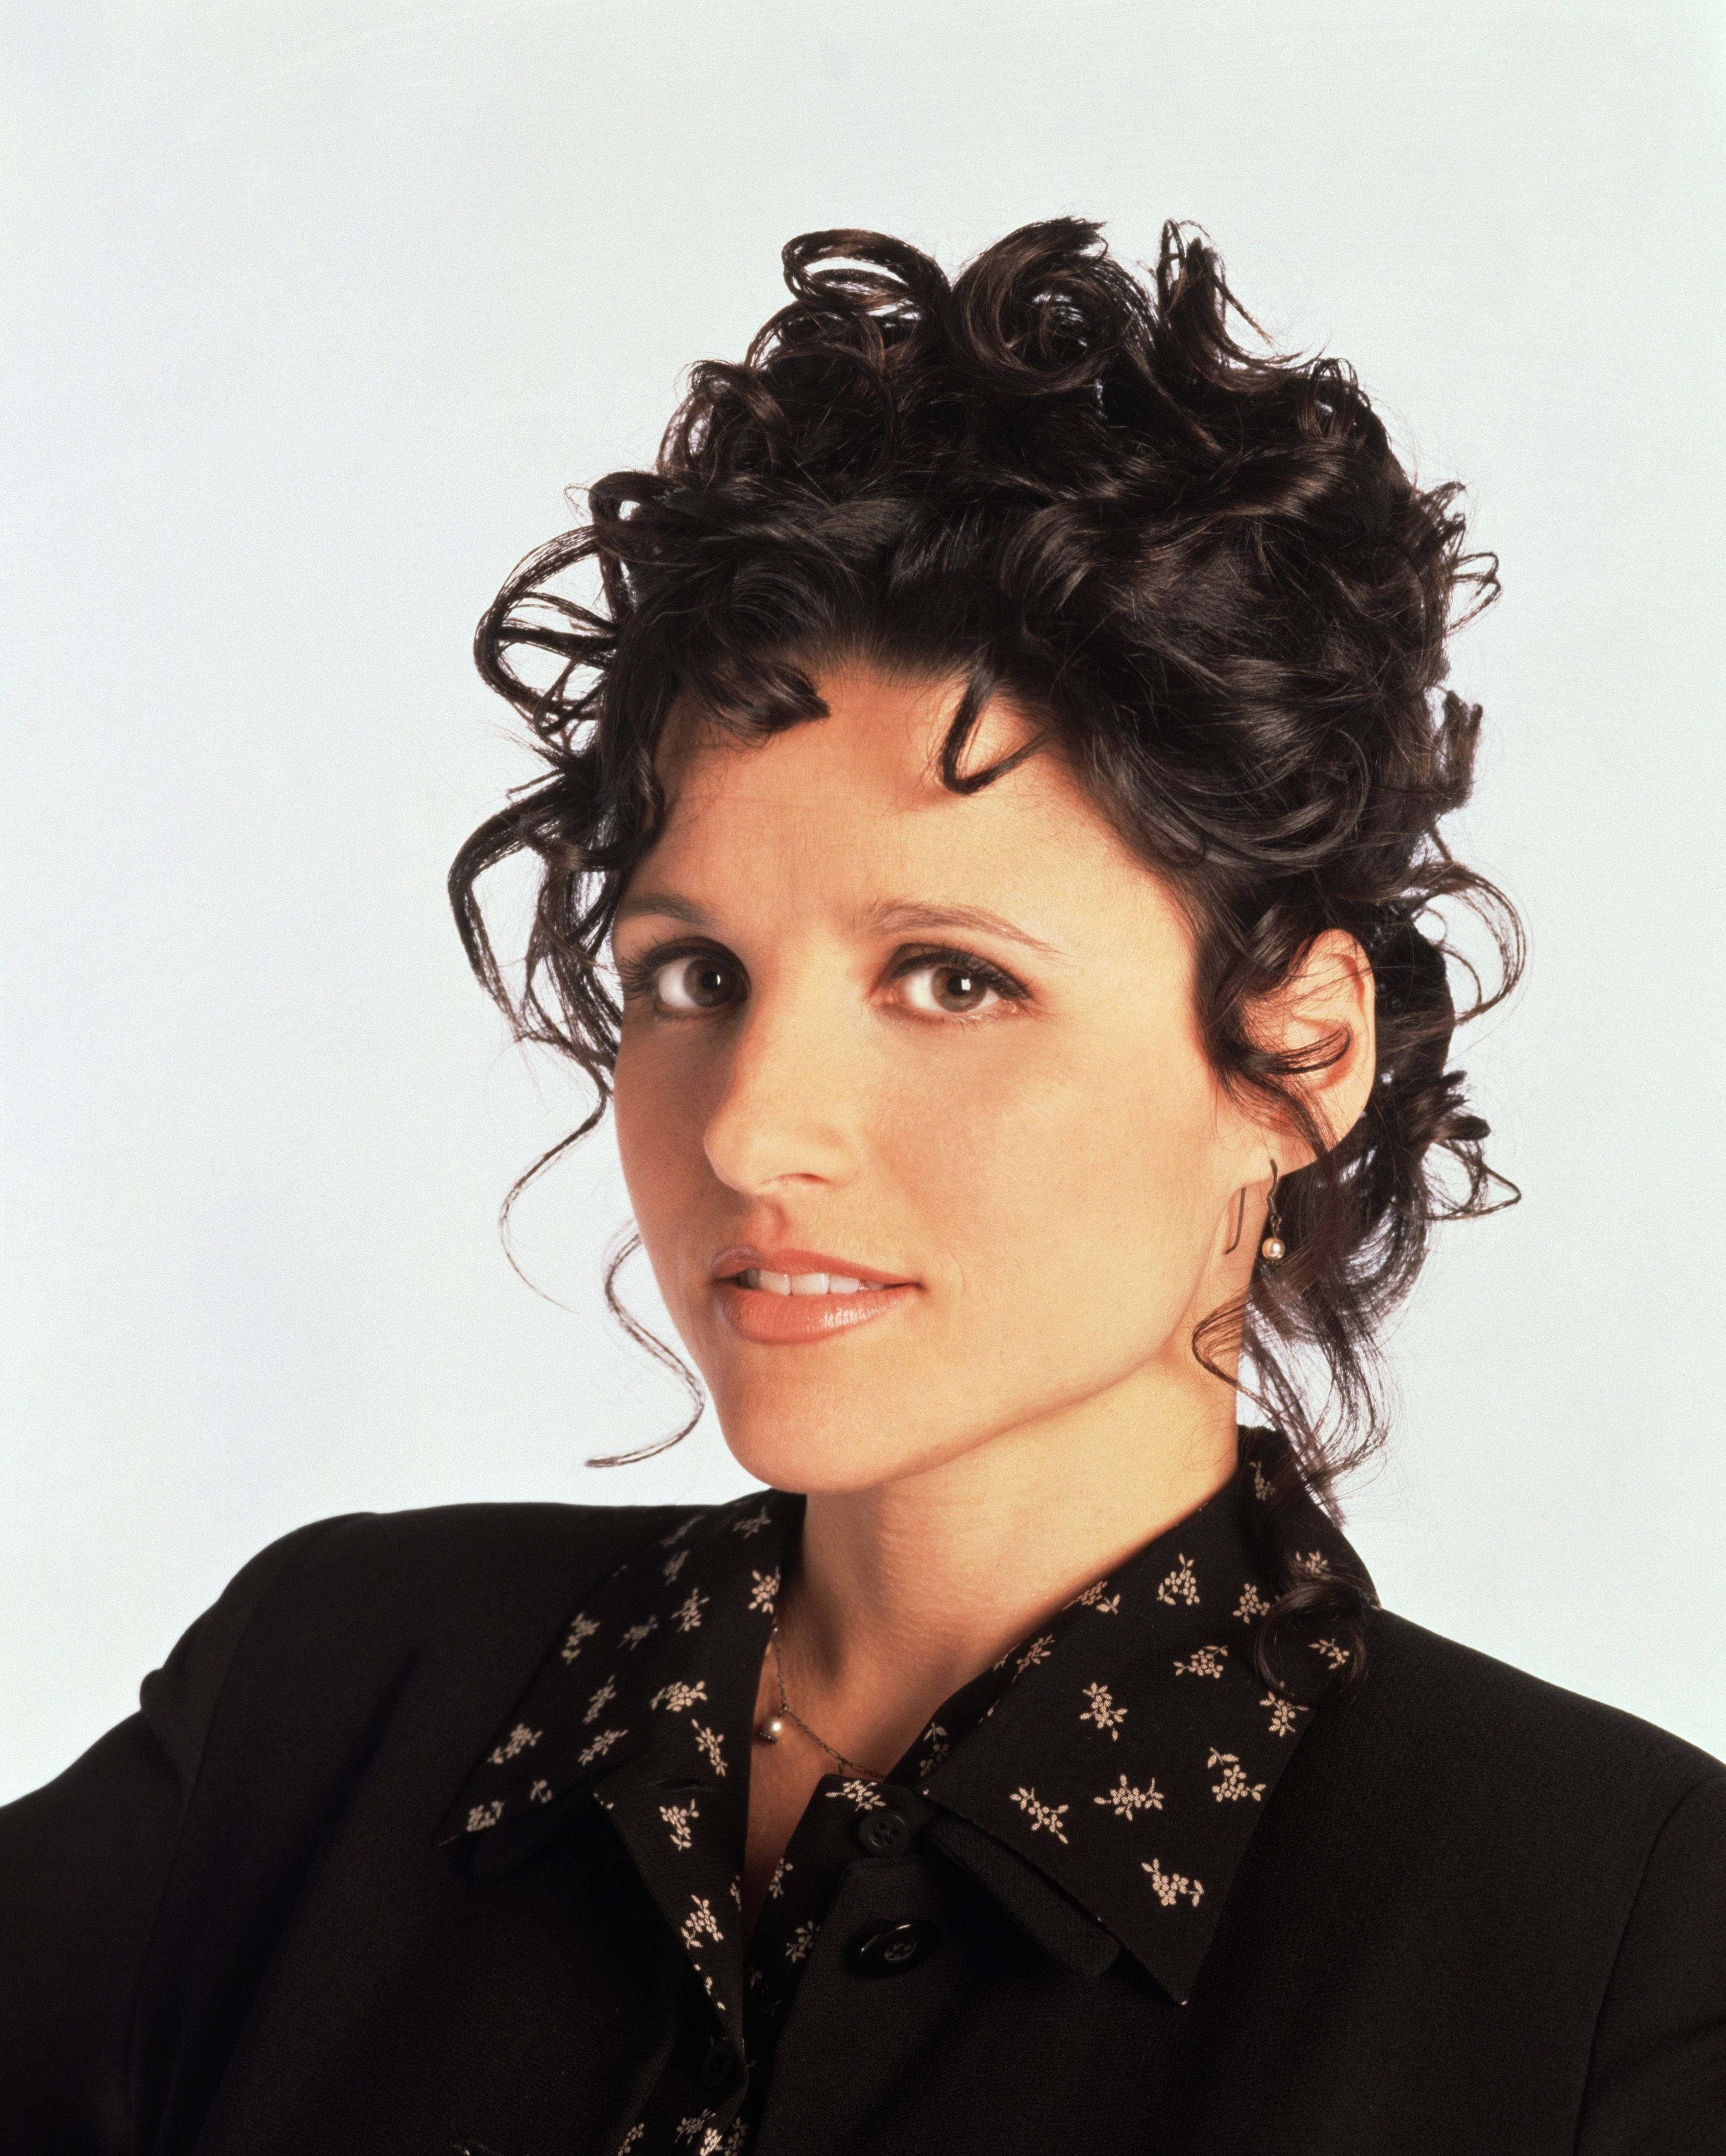 Julia Louis-Dreyfus with her curly hair in black dress